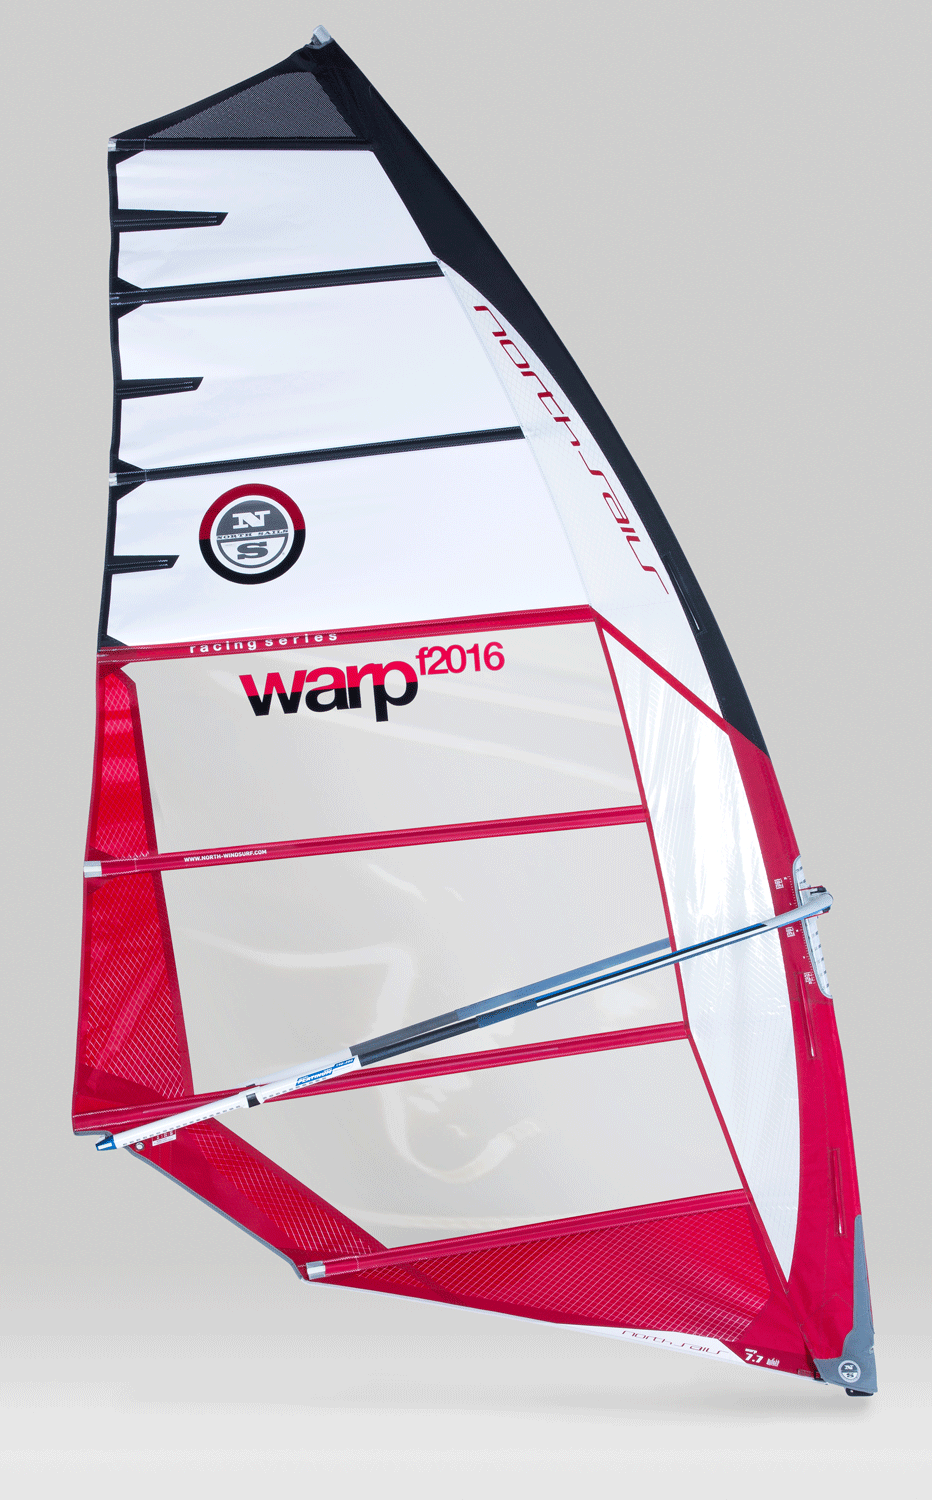 North Sails Warp F2016 7.0